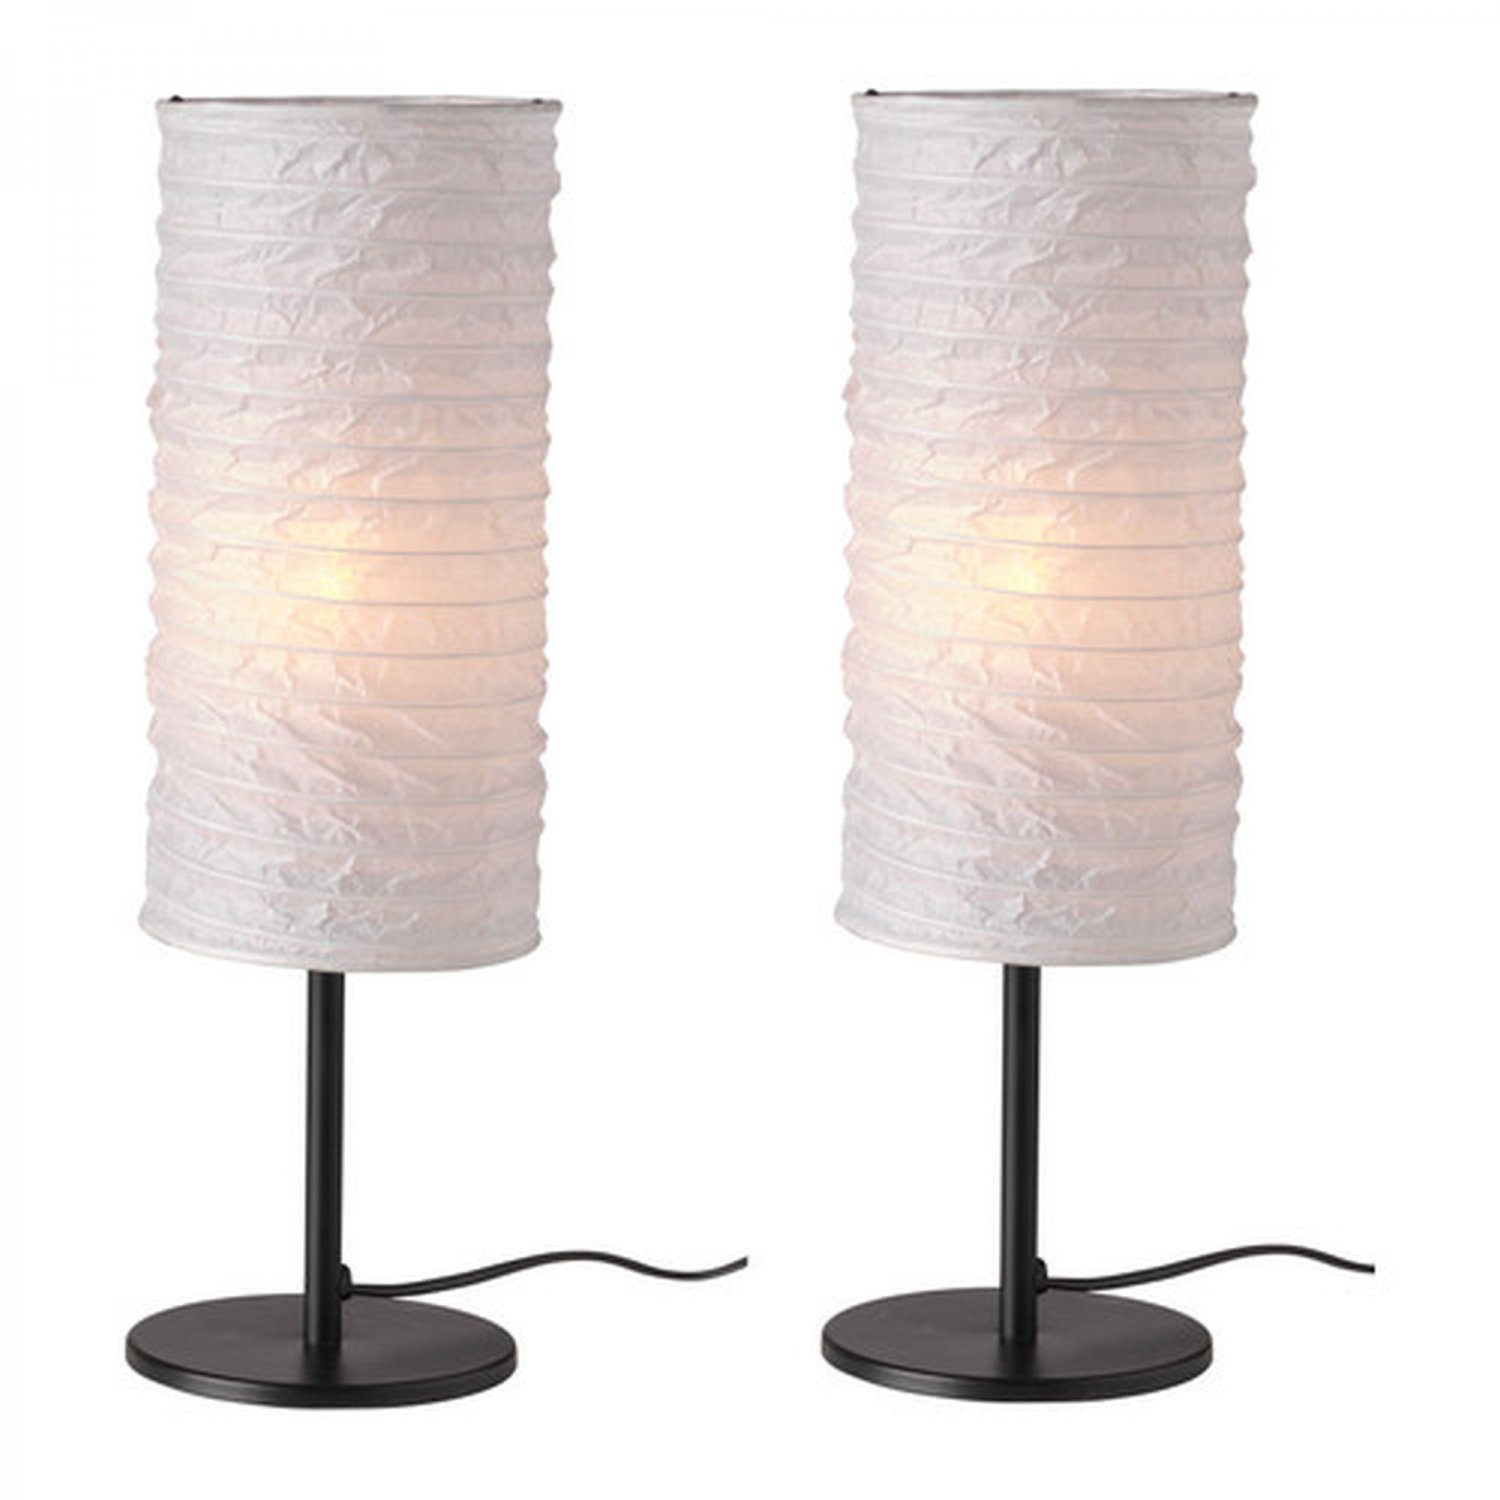 Ikea Oppby White Table Lamp Light Paper Set Of 2 Modern